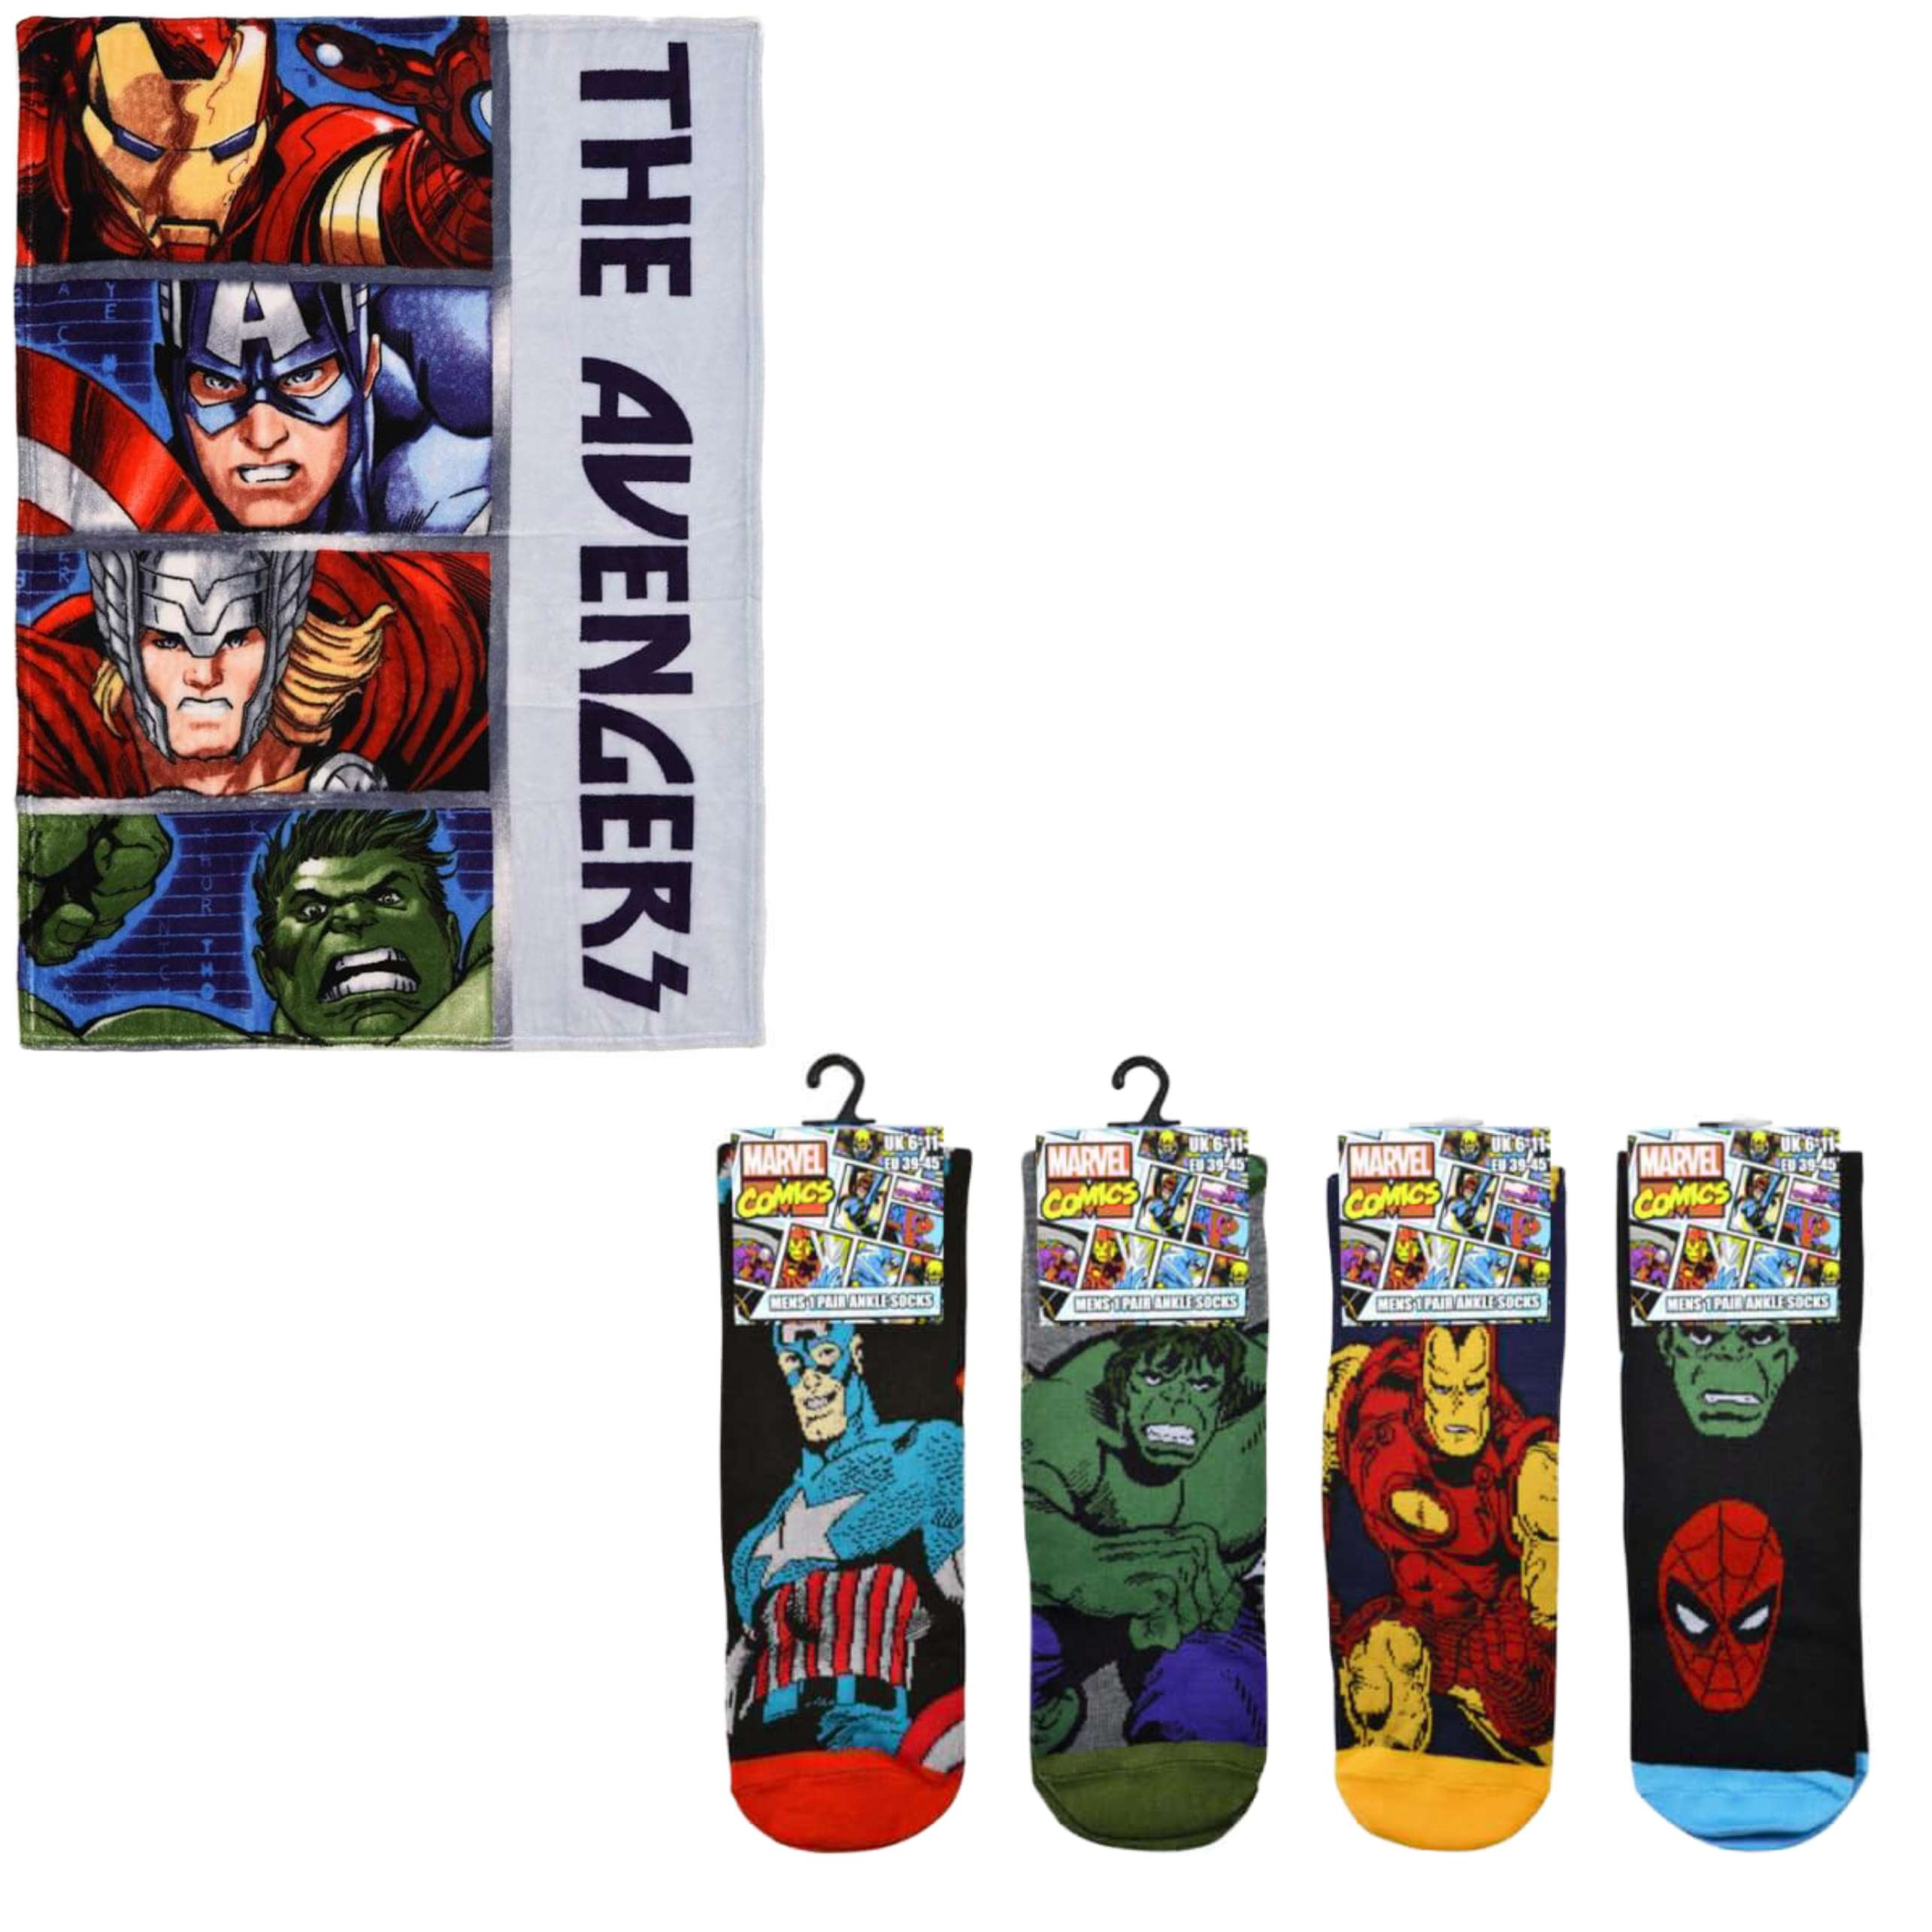 Marvel Avengers Character Fleece Blanket And Four Pack Avengers Socks